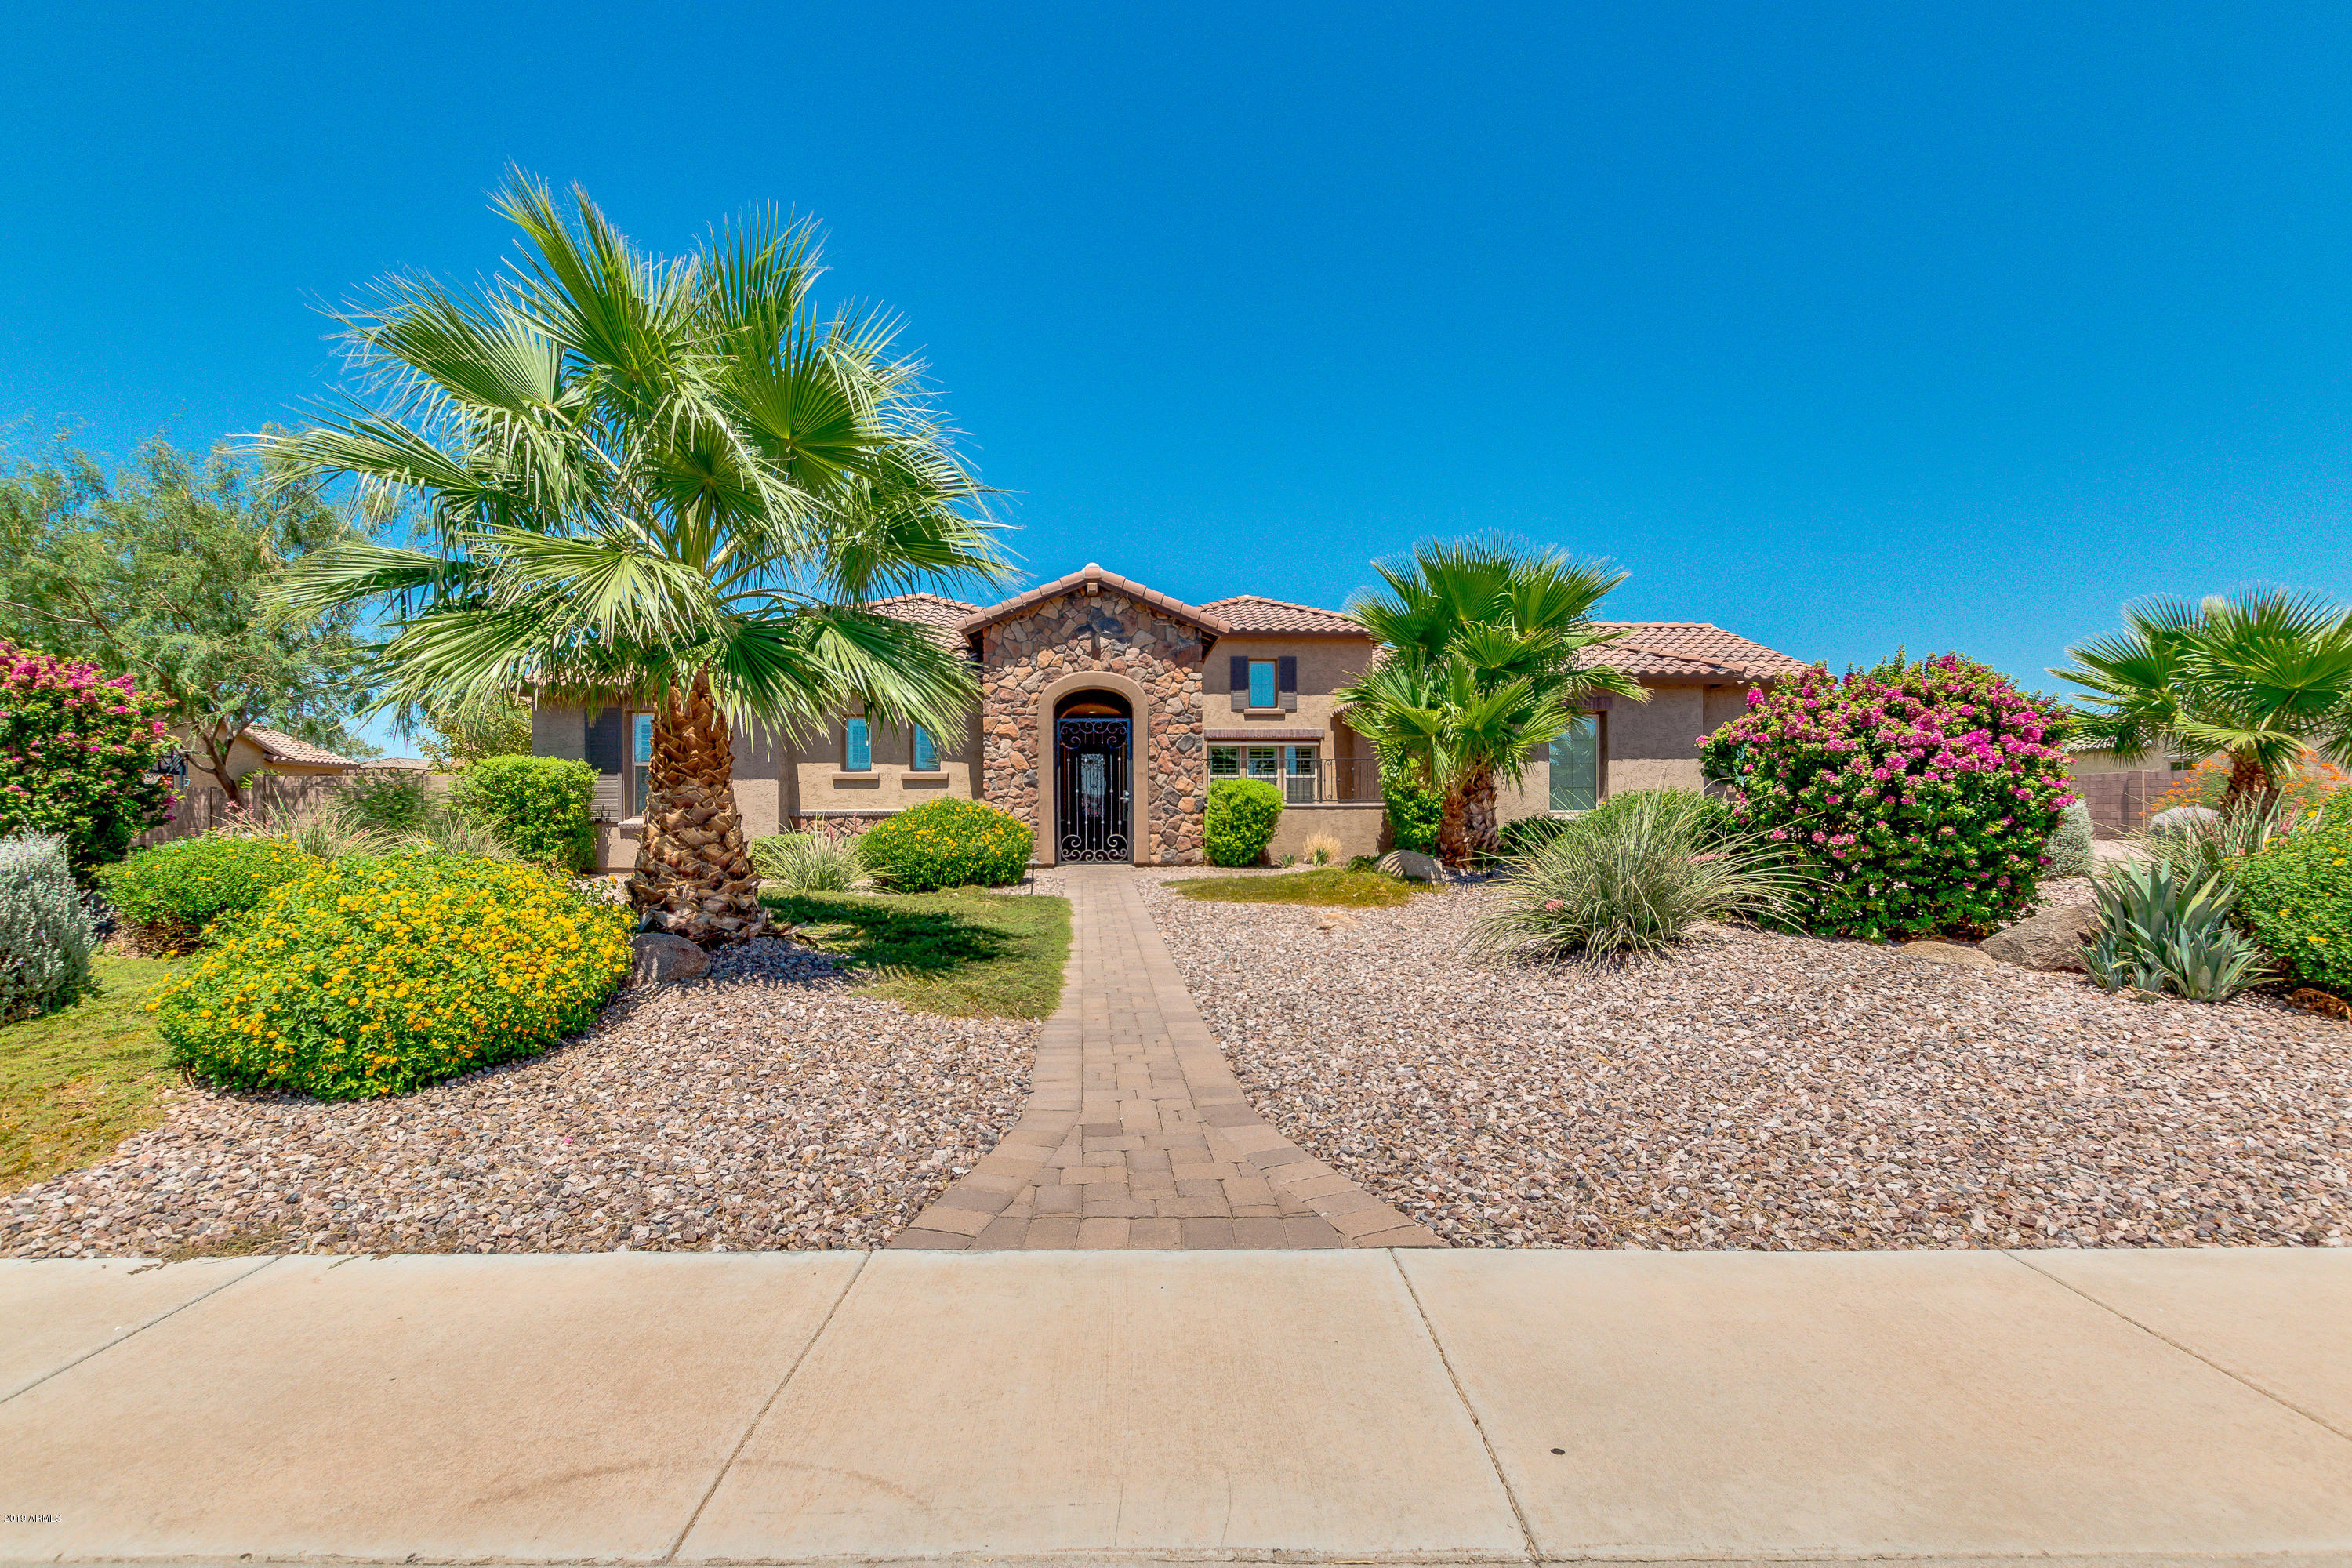 7270 W WHISPERING WIND Drive, Peoria, Arizona